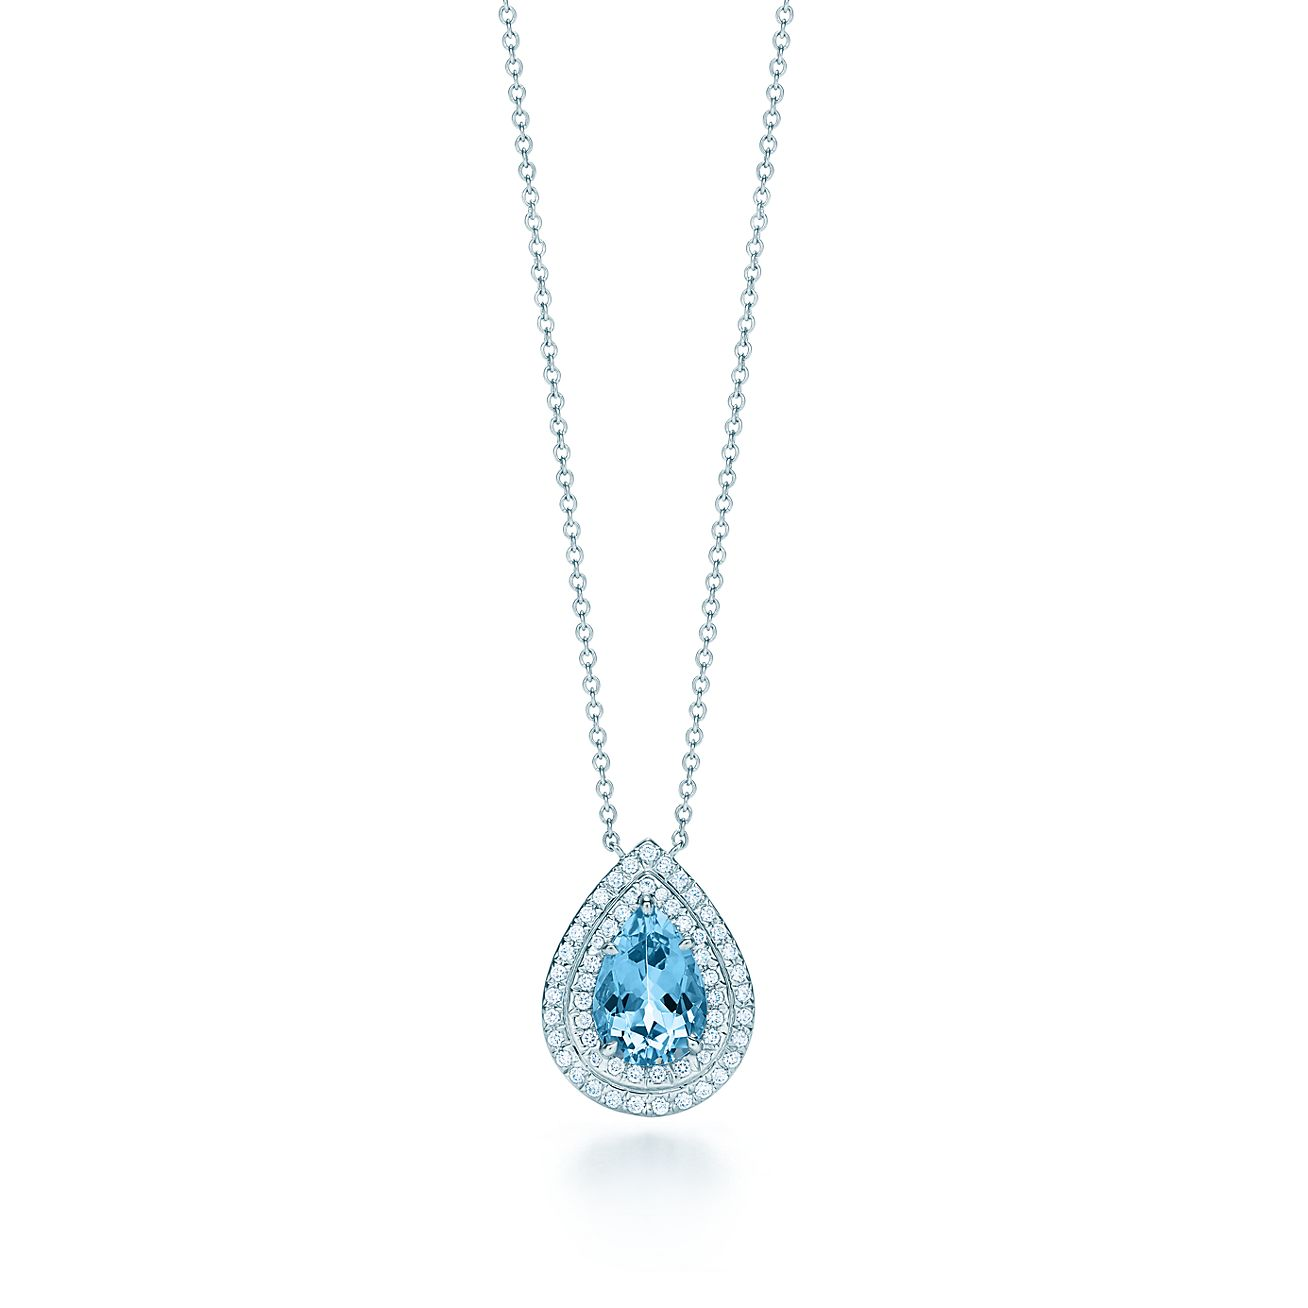 Tiffany soleste pendant in platinum with an aquamarine and diamonds tiffany solesteaquamarine and diamond pendant aloadofball Image collections